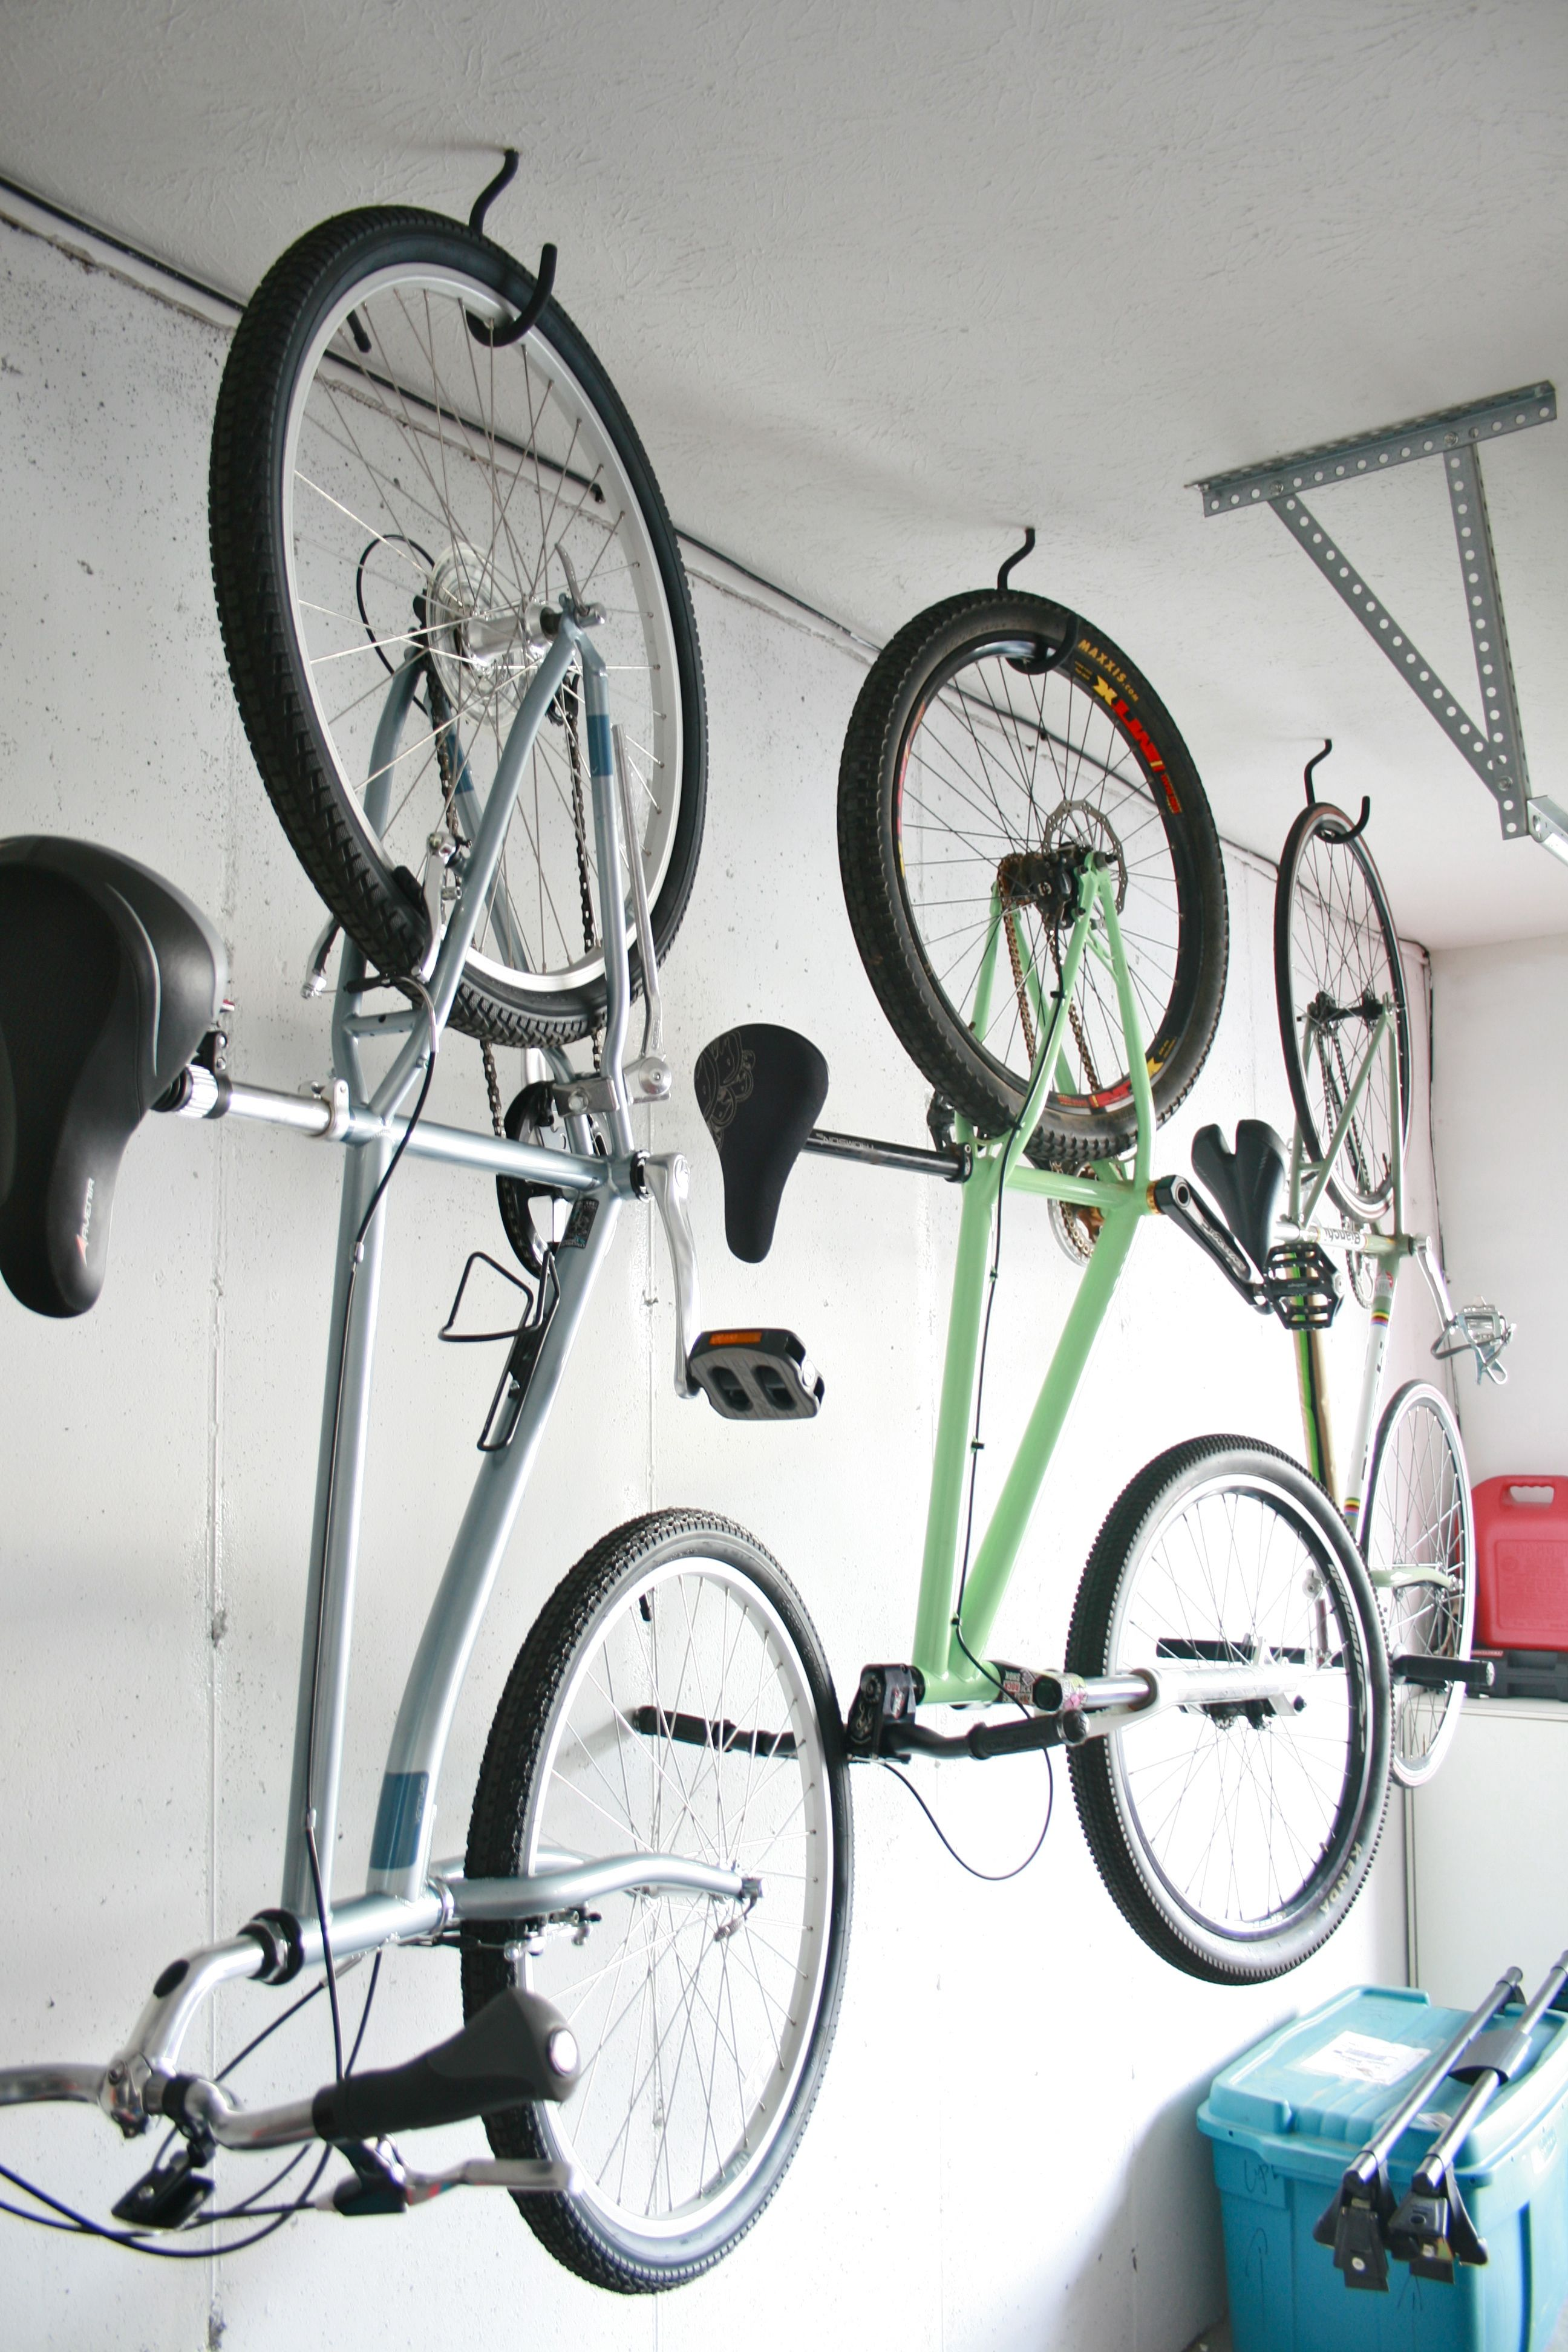 wall shed road bicycle mounted bikes holder best garage uk ascensafurore brackets small size full hanging of rackwall hooks bike mounting rack storage furniture for